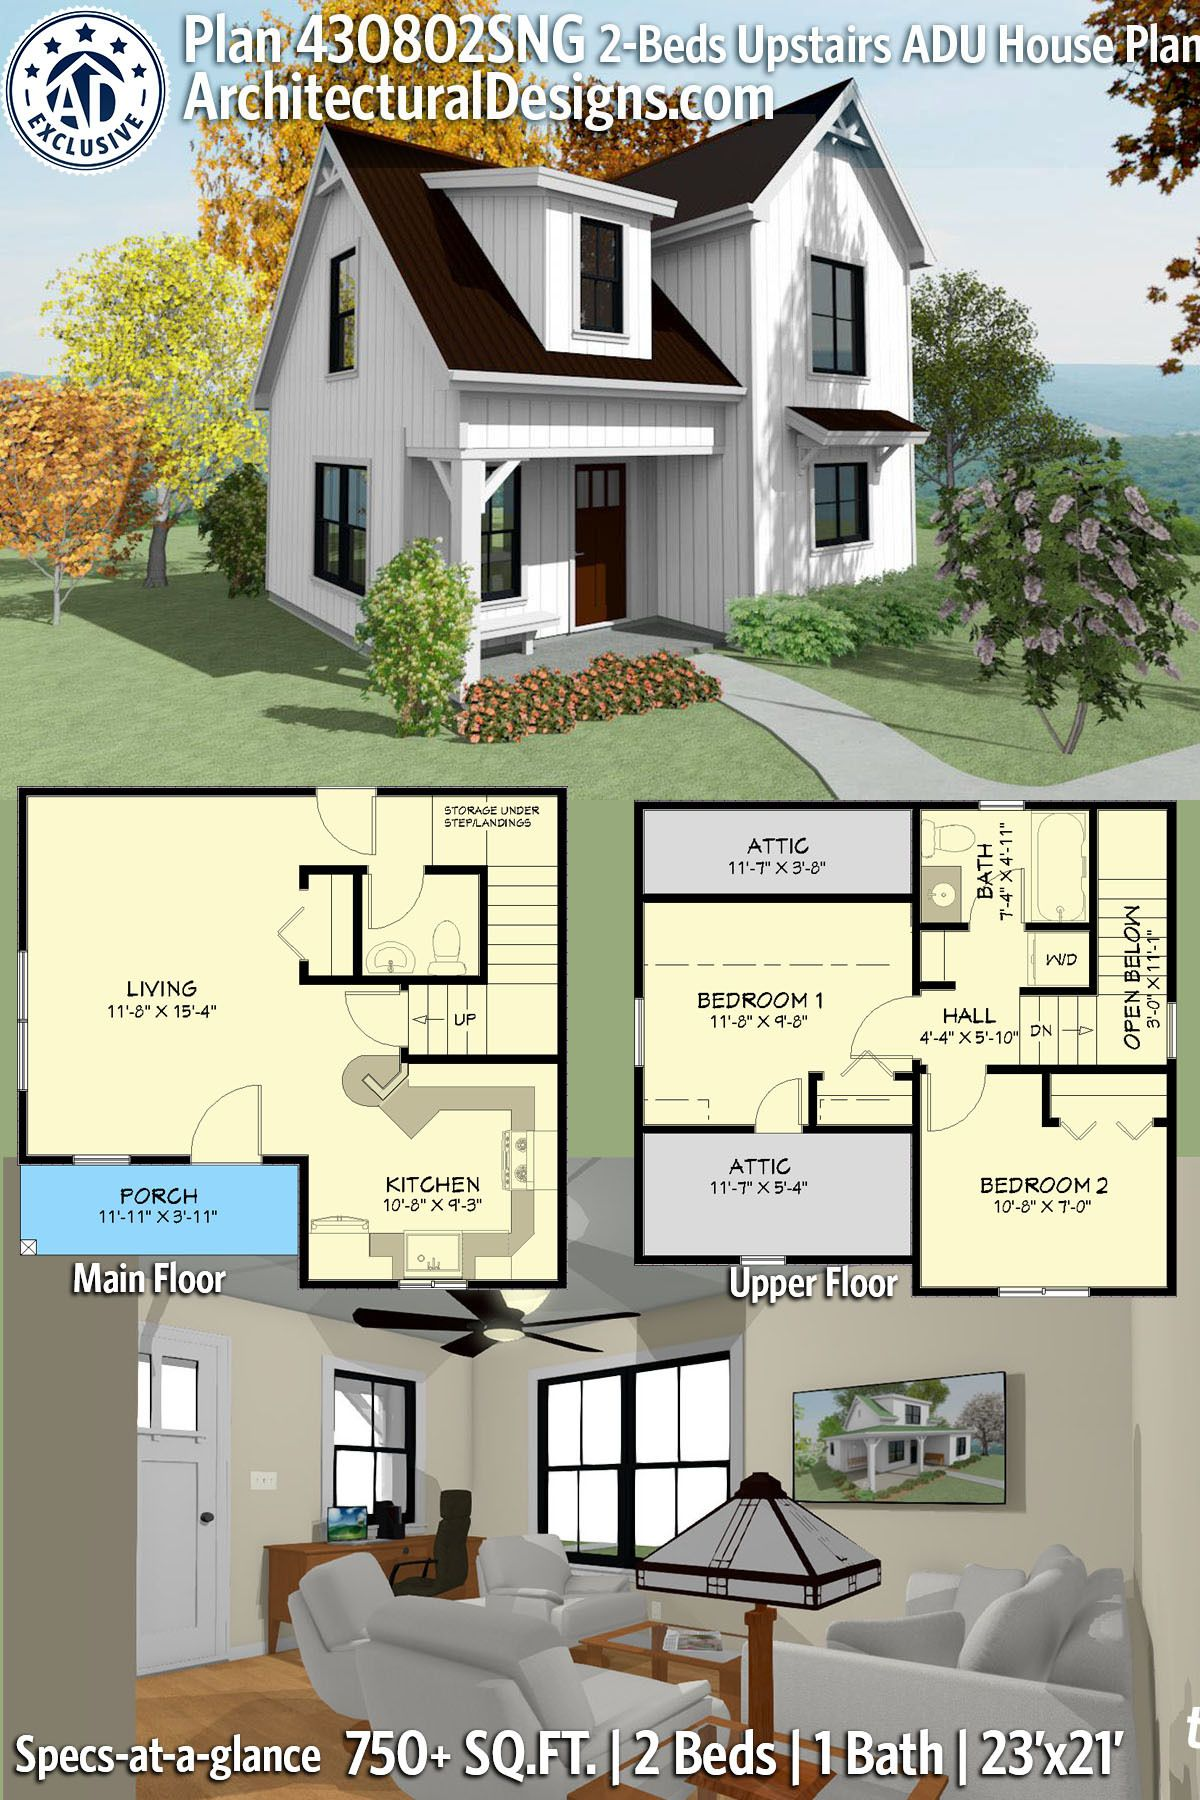 Plan 430802sng Exclusive Two Story House Plan With Upstairs Bedrooms In 2021 Guest House Plans Sims House Plans House Plans Farmhouse